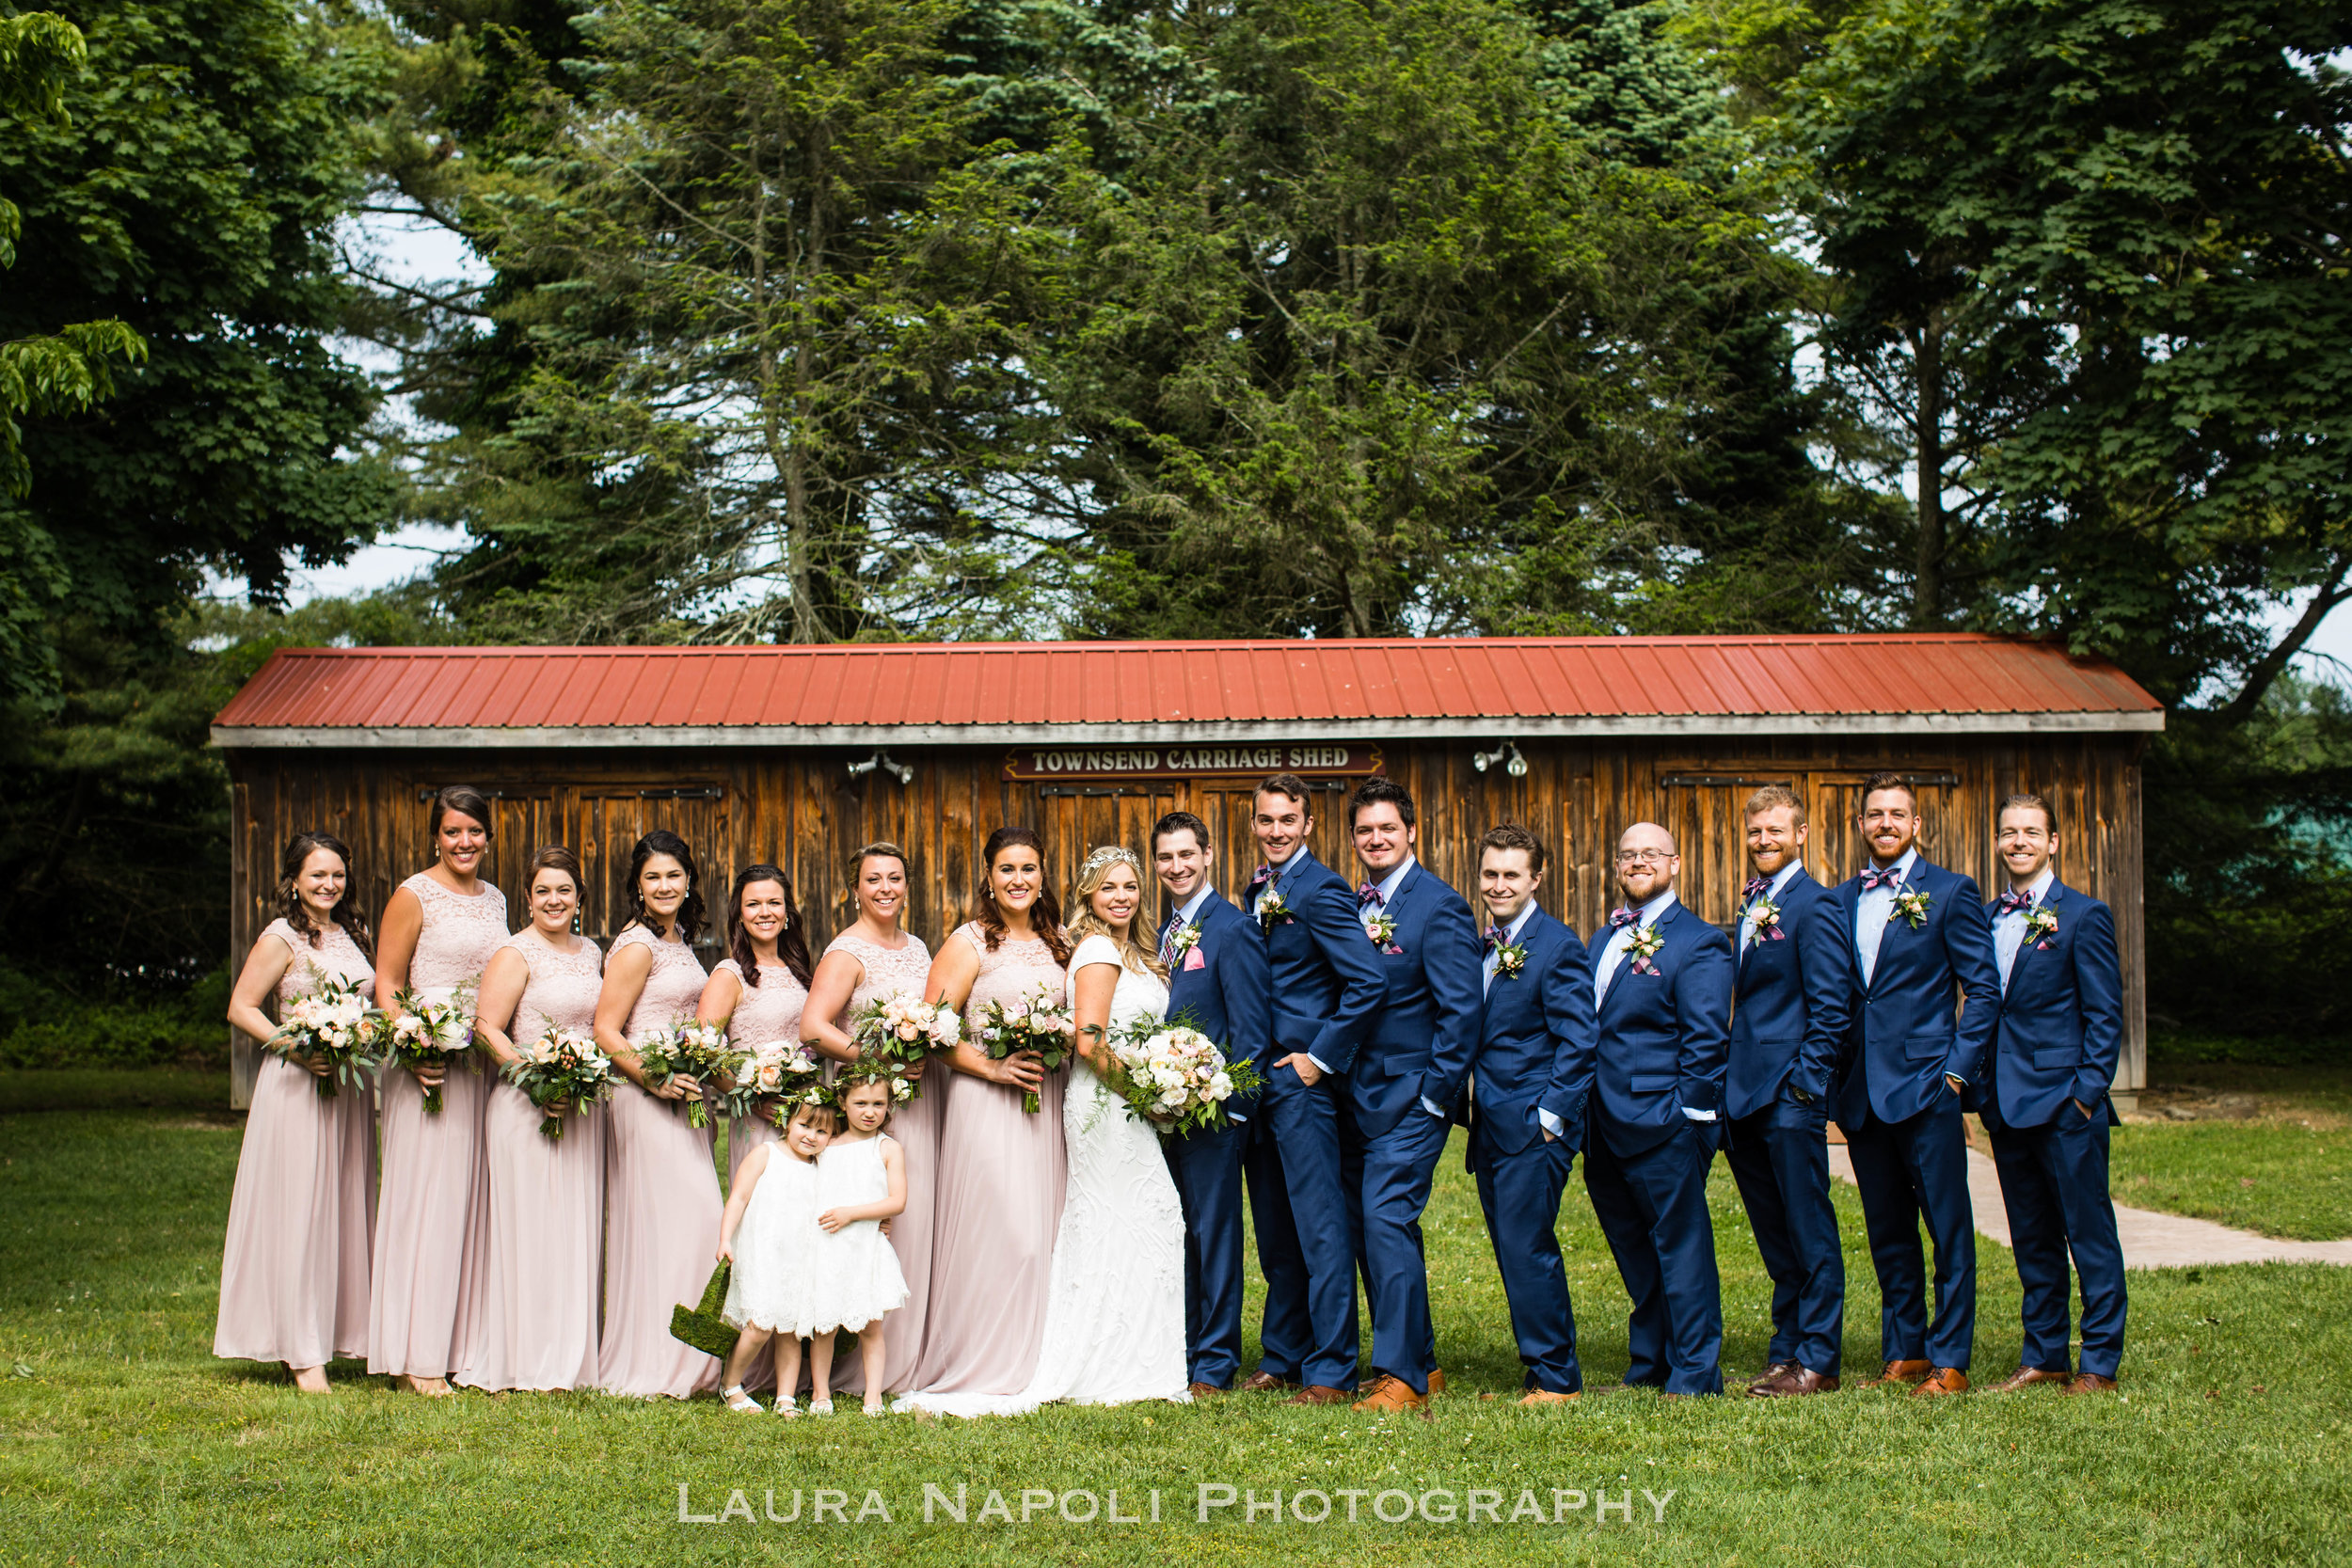 abbieholmesestateweddingcapemaynjweddingphotographer-17.jpg